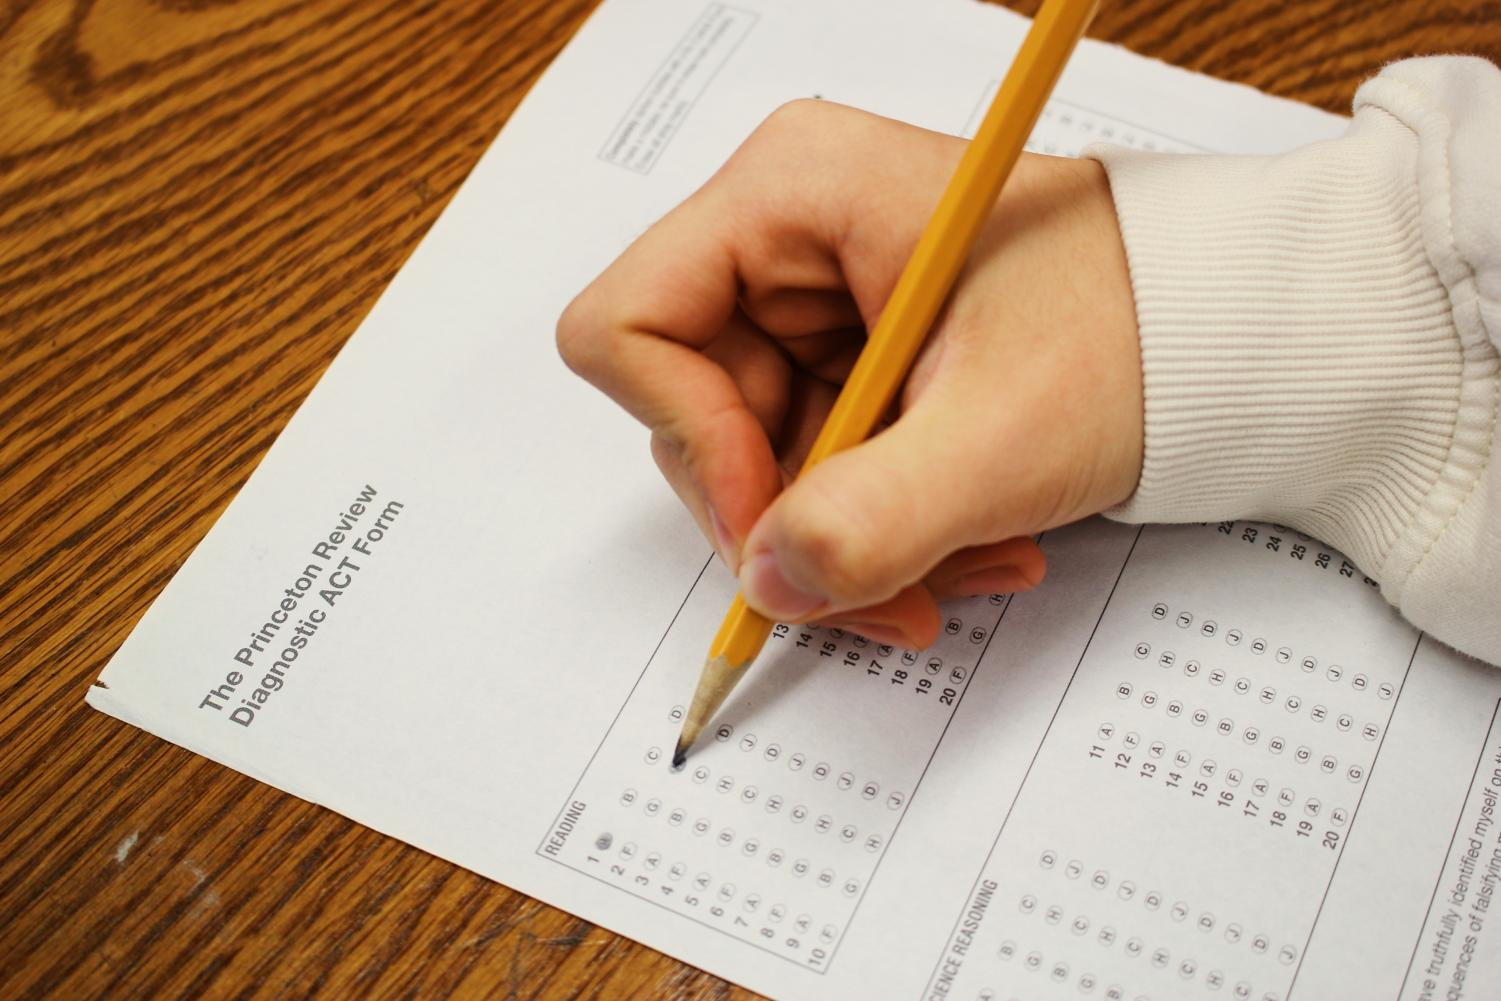 Students may not need to take the SAT or ACT to apply to college.